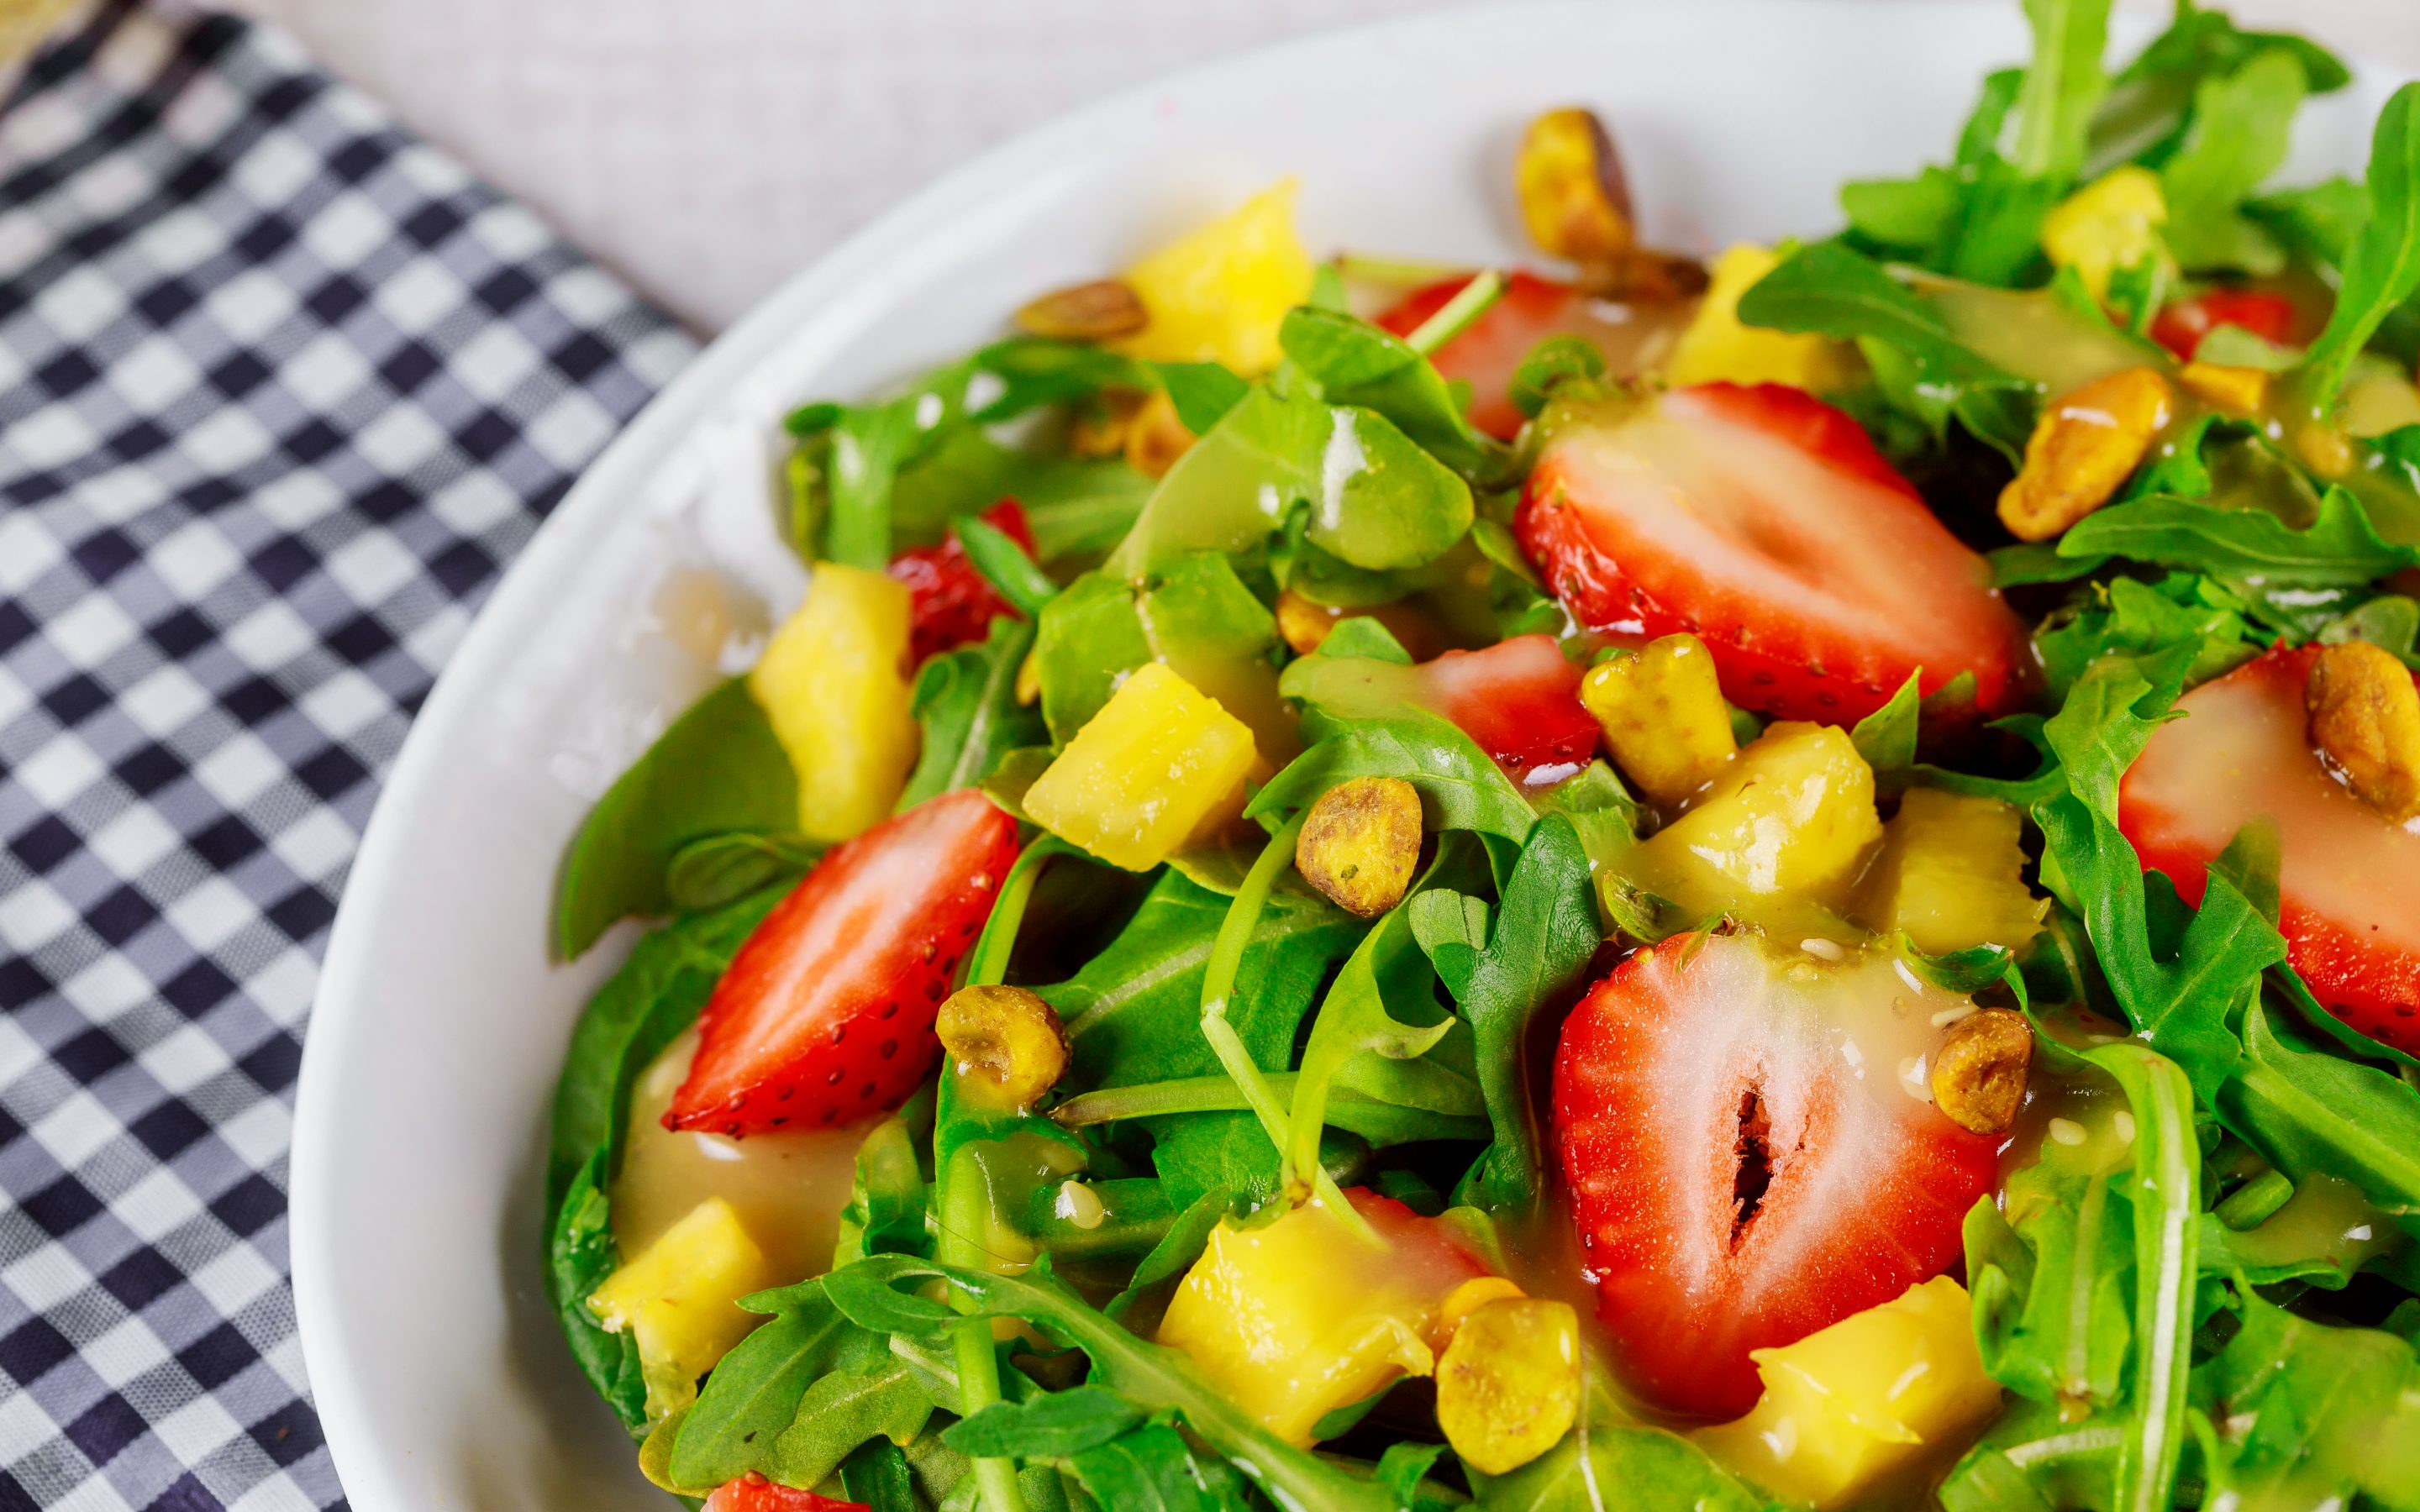 Pistachio strawberry spinach salad